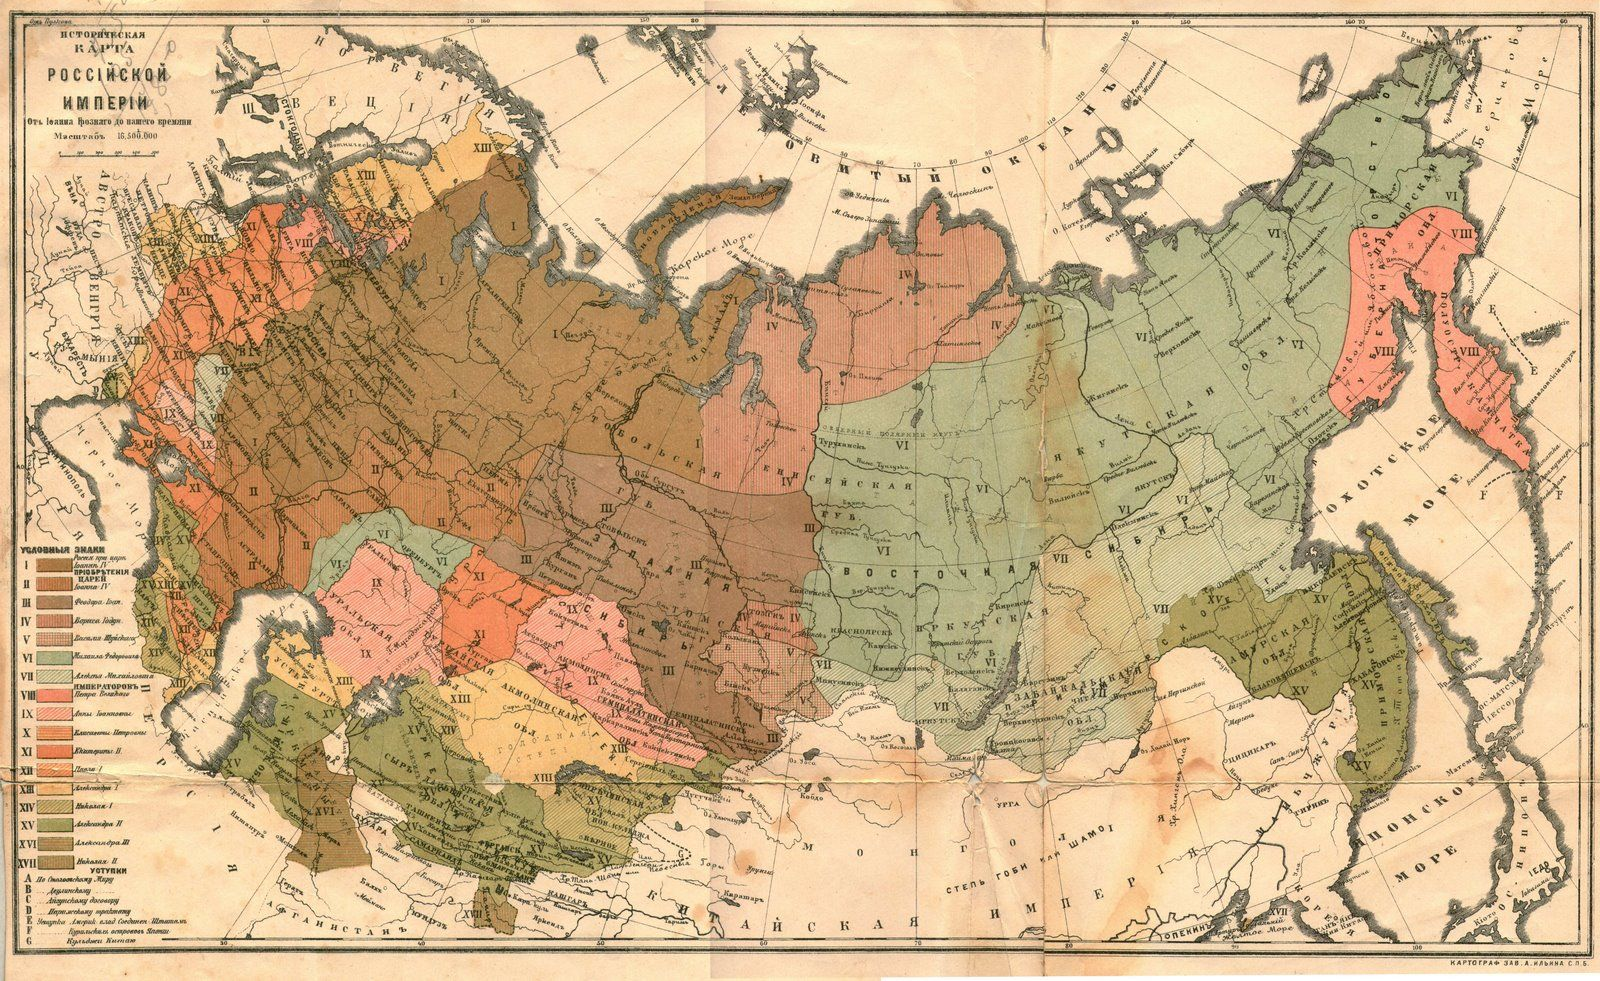 Russia In 1900 World Tour In 2019 Pinterest Map Old Maps And